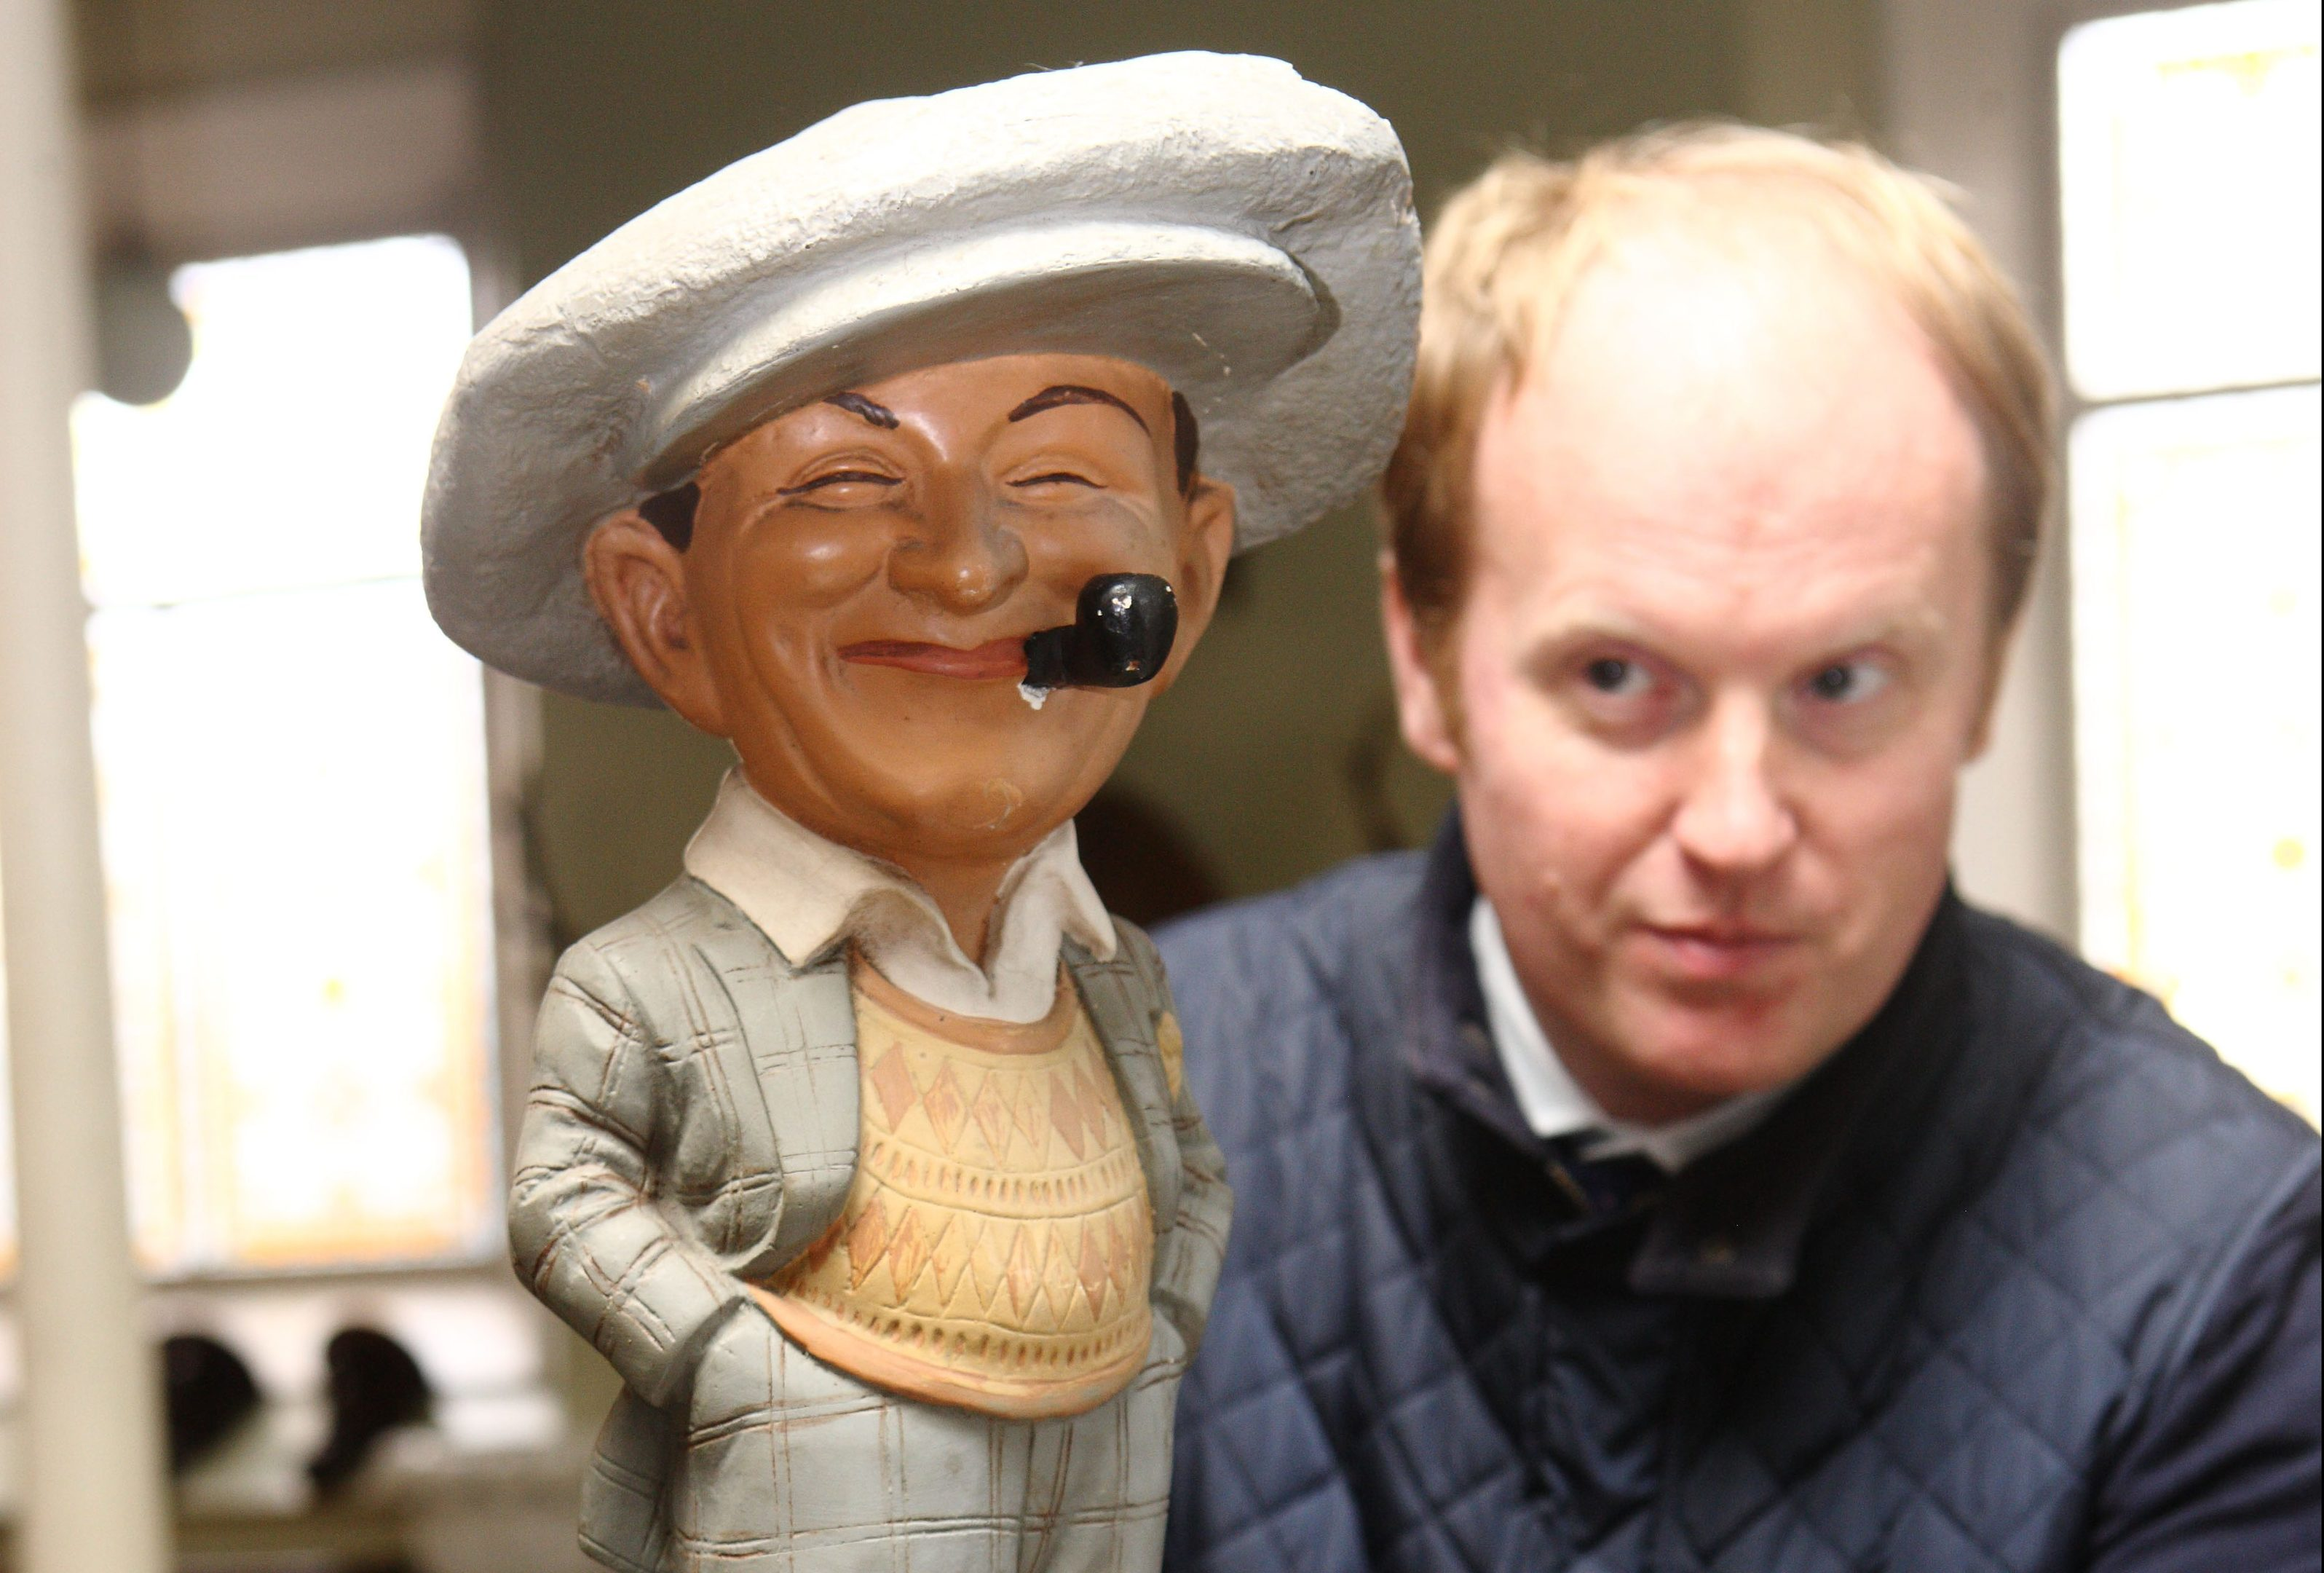 Nick Burns with an early 20th century  shop figure figurine.